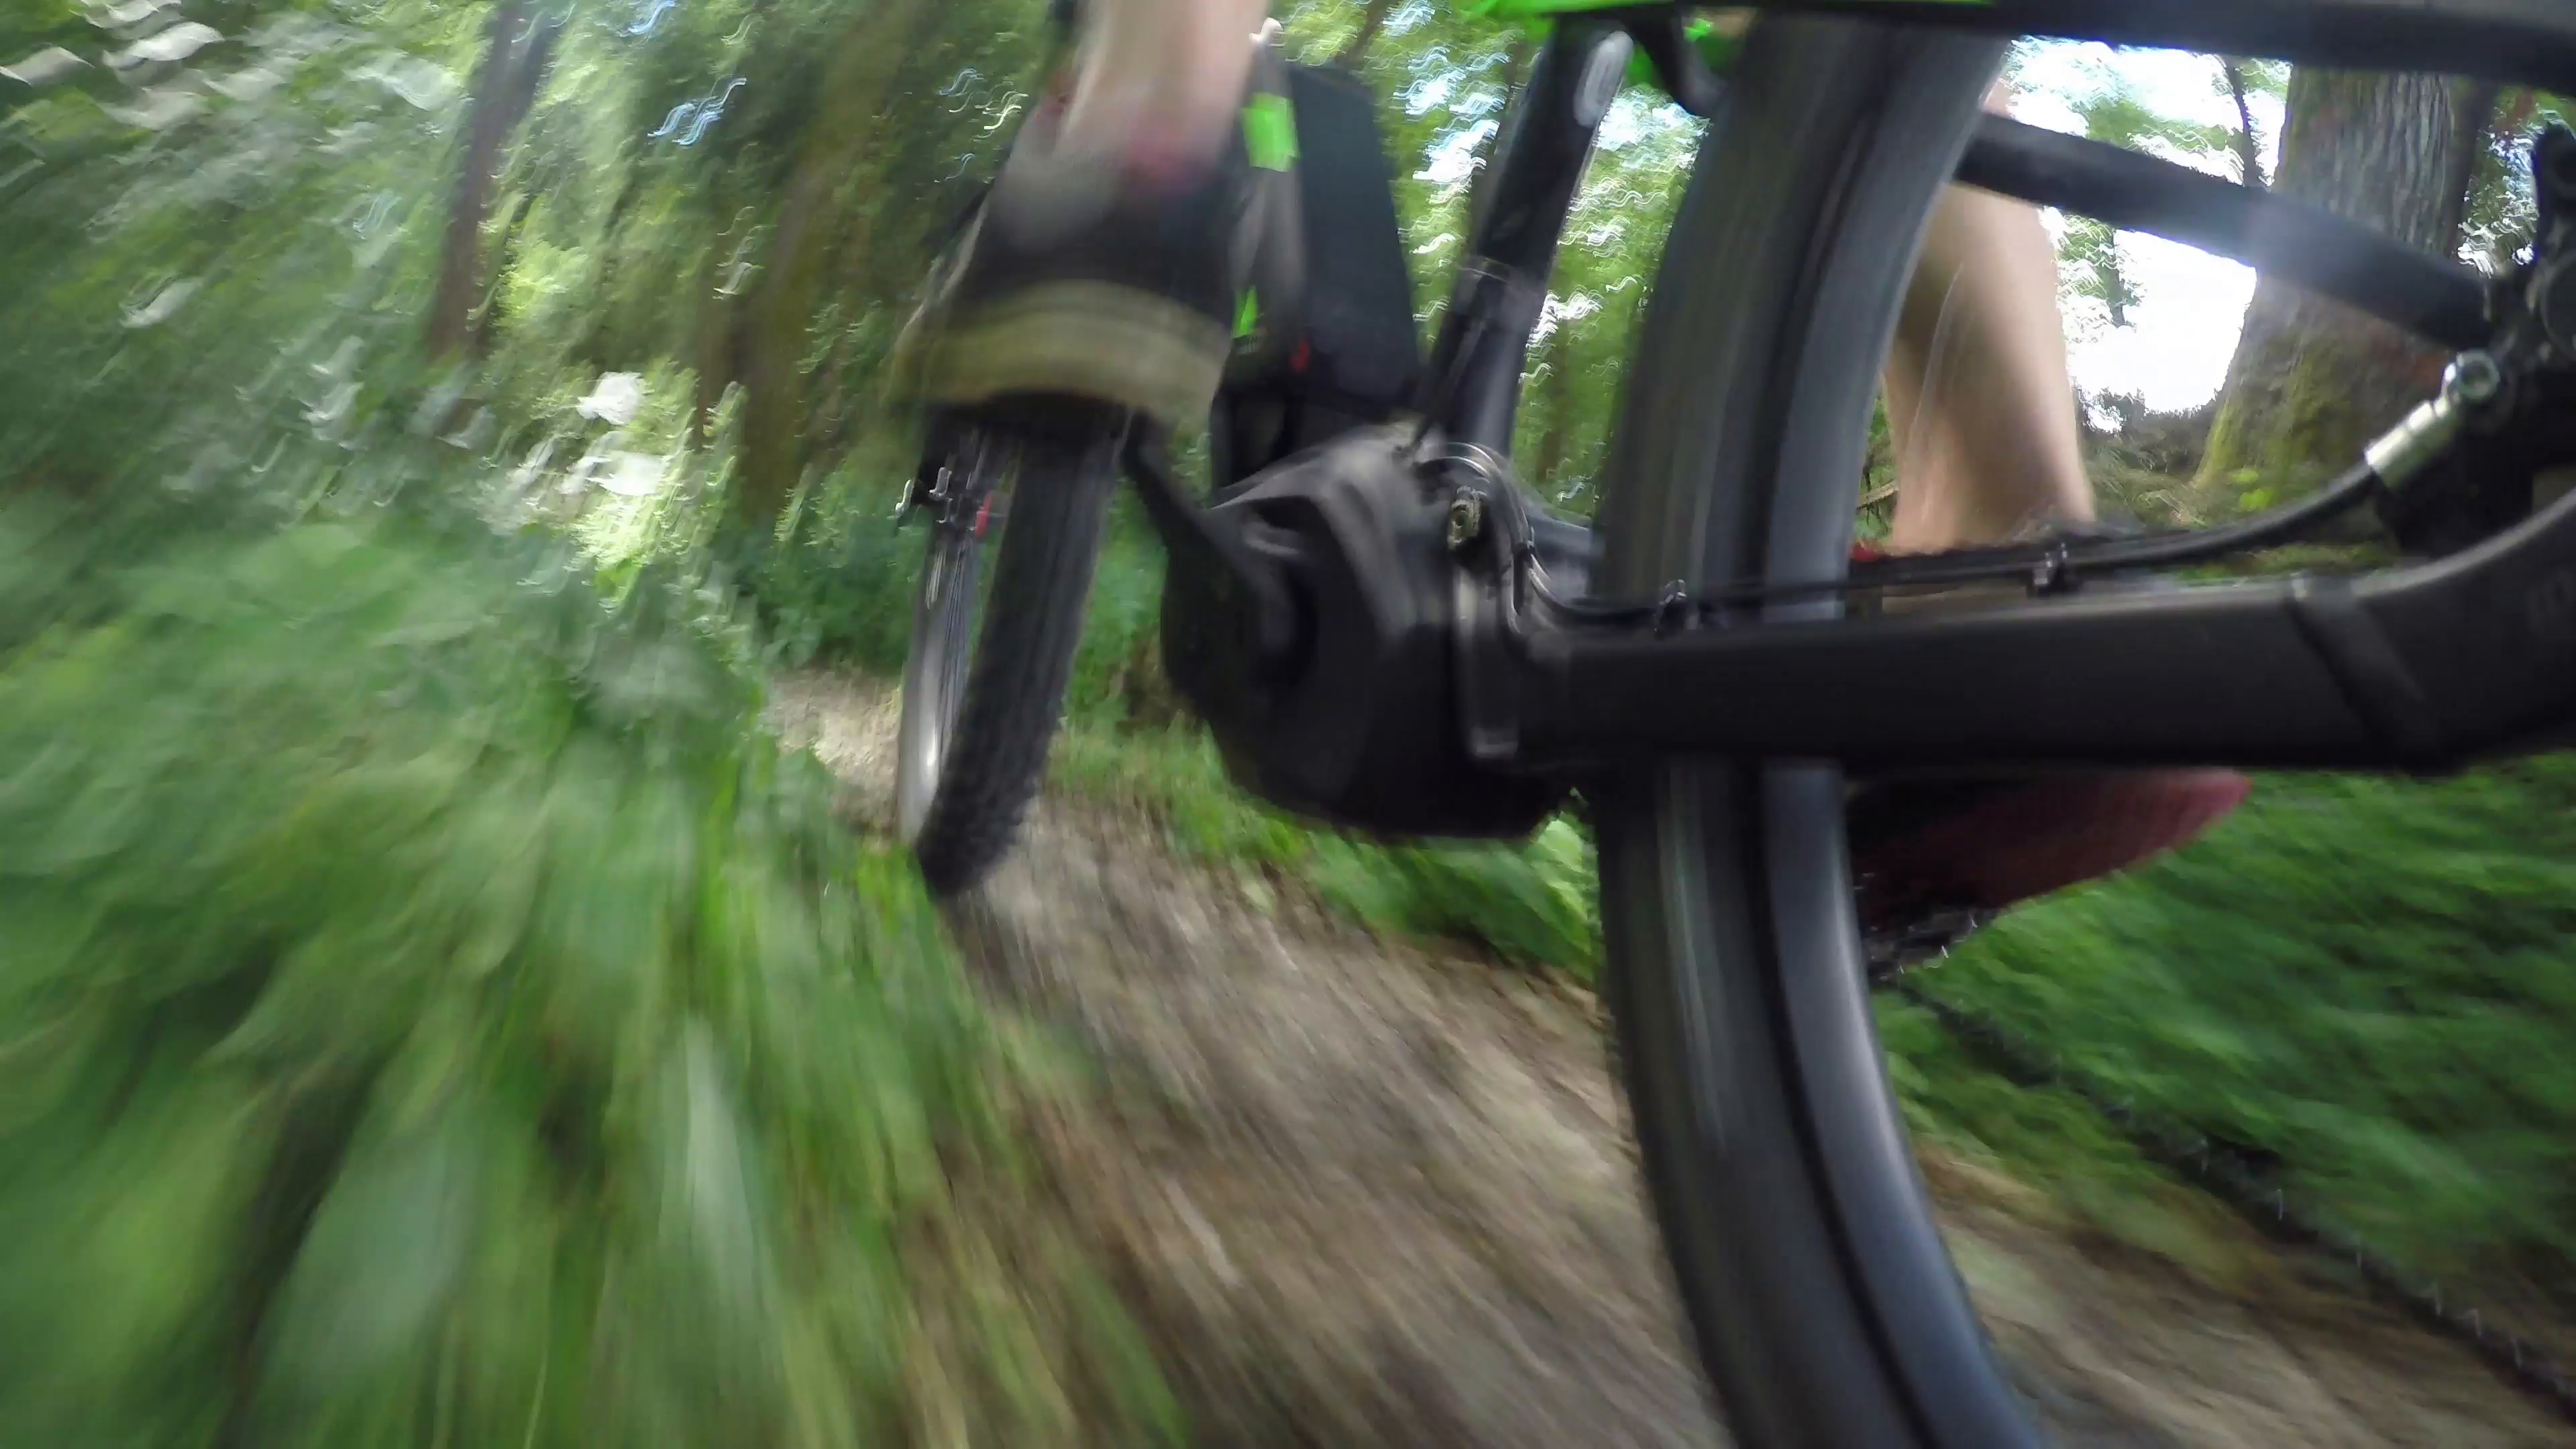 CLOSE UP: Unrecognizable man pedaling electric bike on offroad trail ...